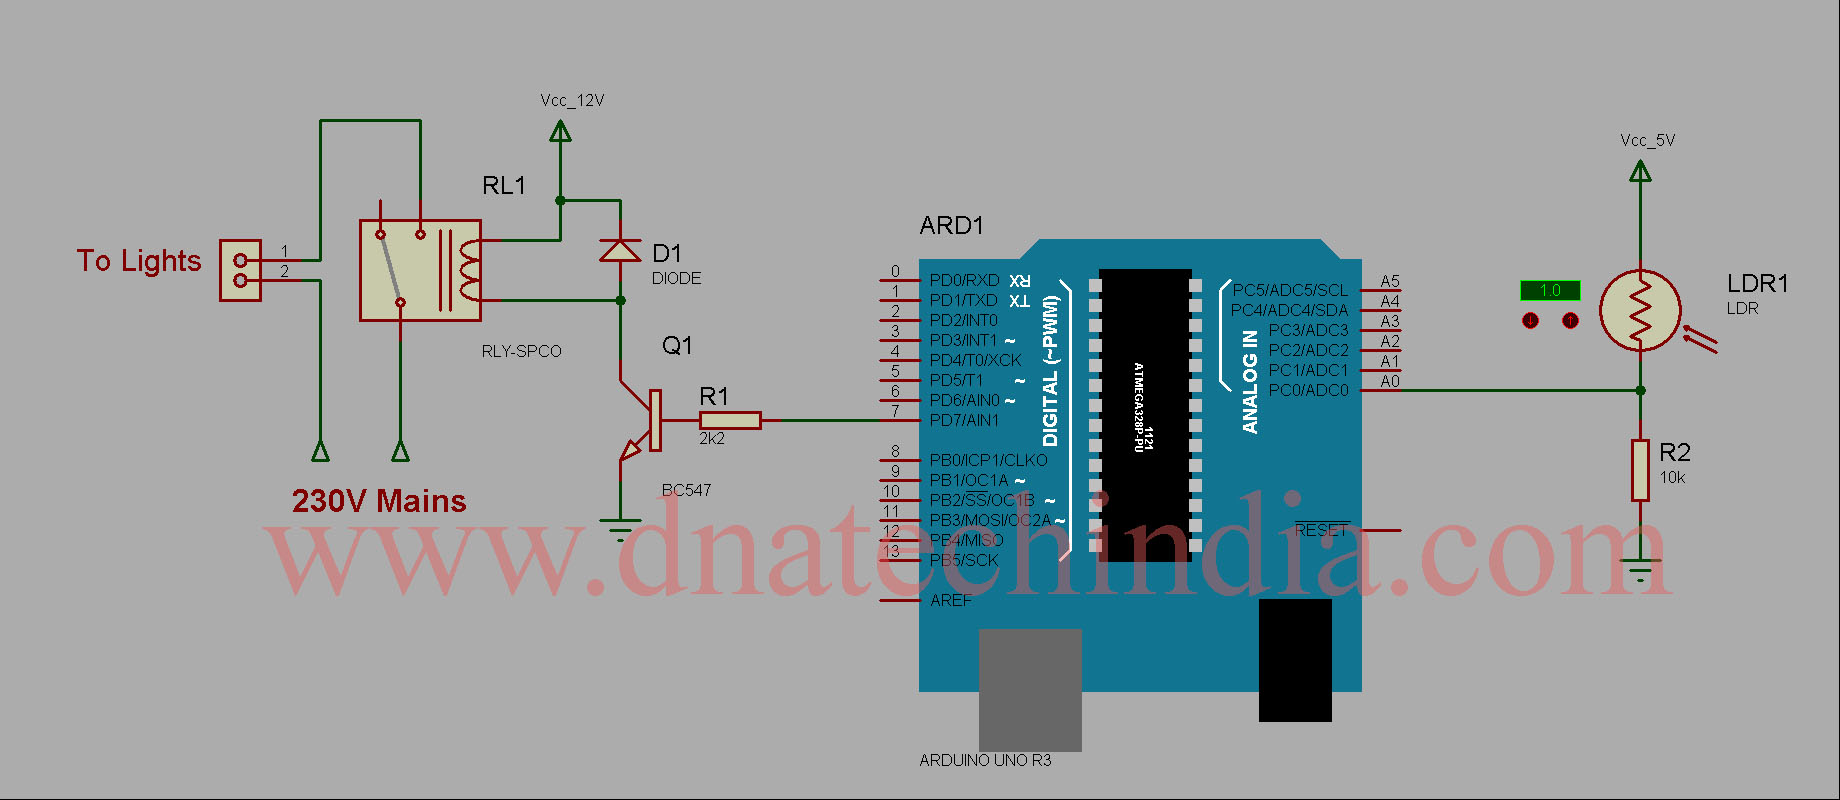 hight resolution of a light dependent resistor ldr is used over here to measure the ambient light condition and accordingly turn on off a relay an ldr s resistance changes